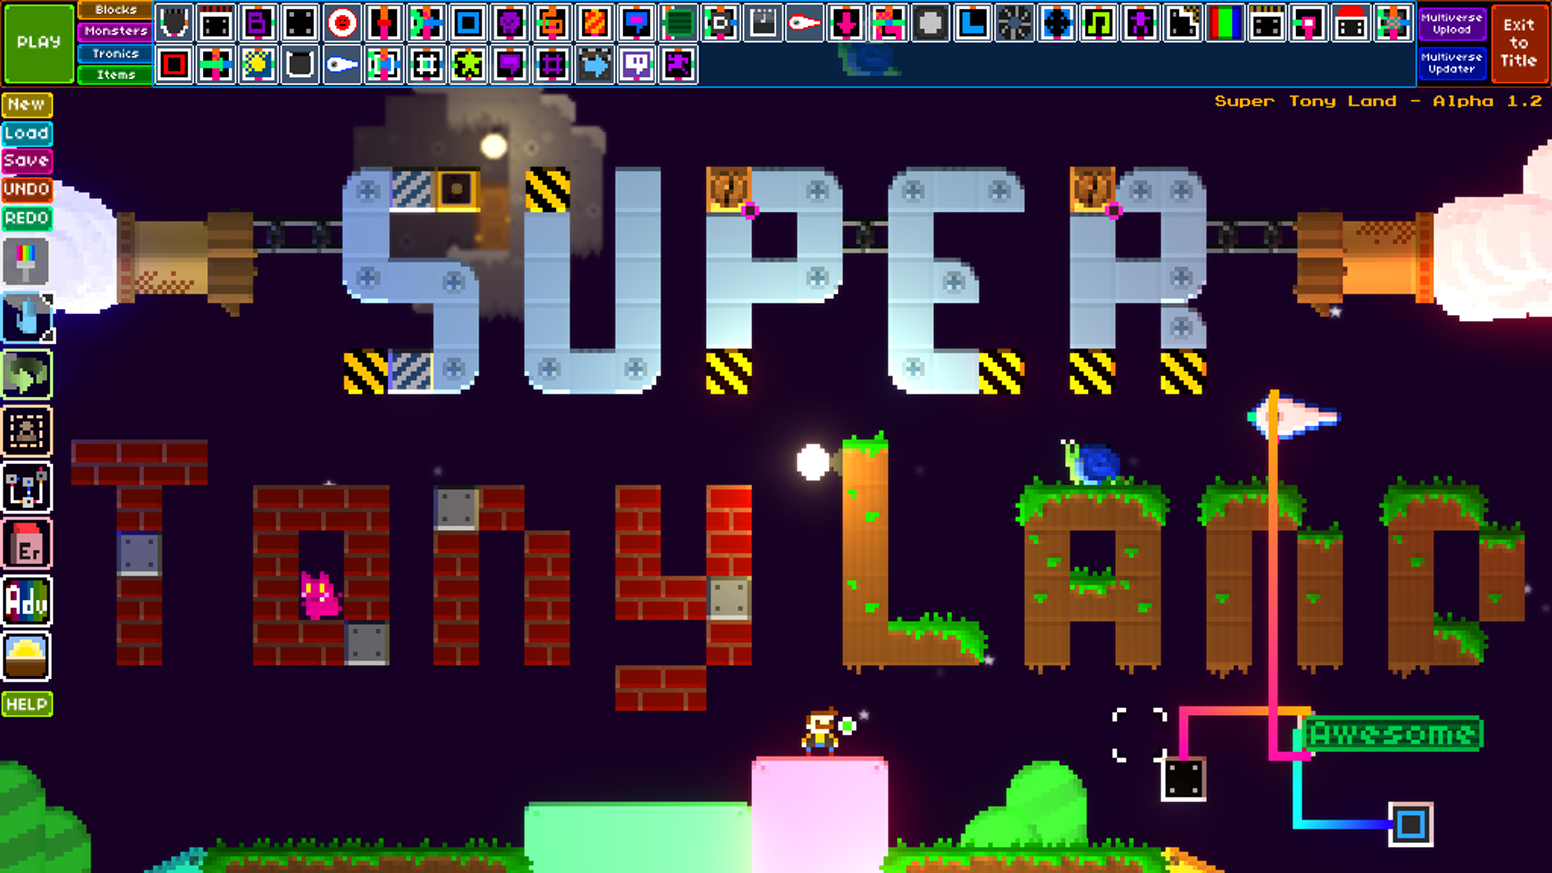 Super Tony Land - Create and Share Levels by RobotLovesKitty